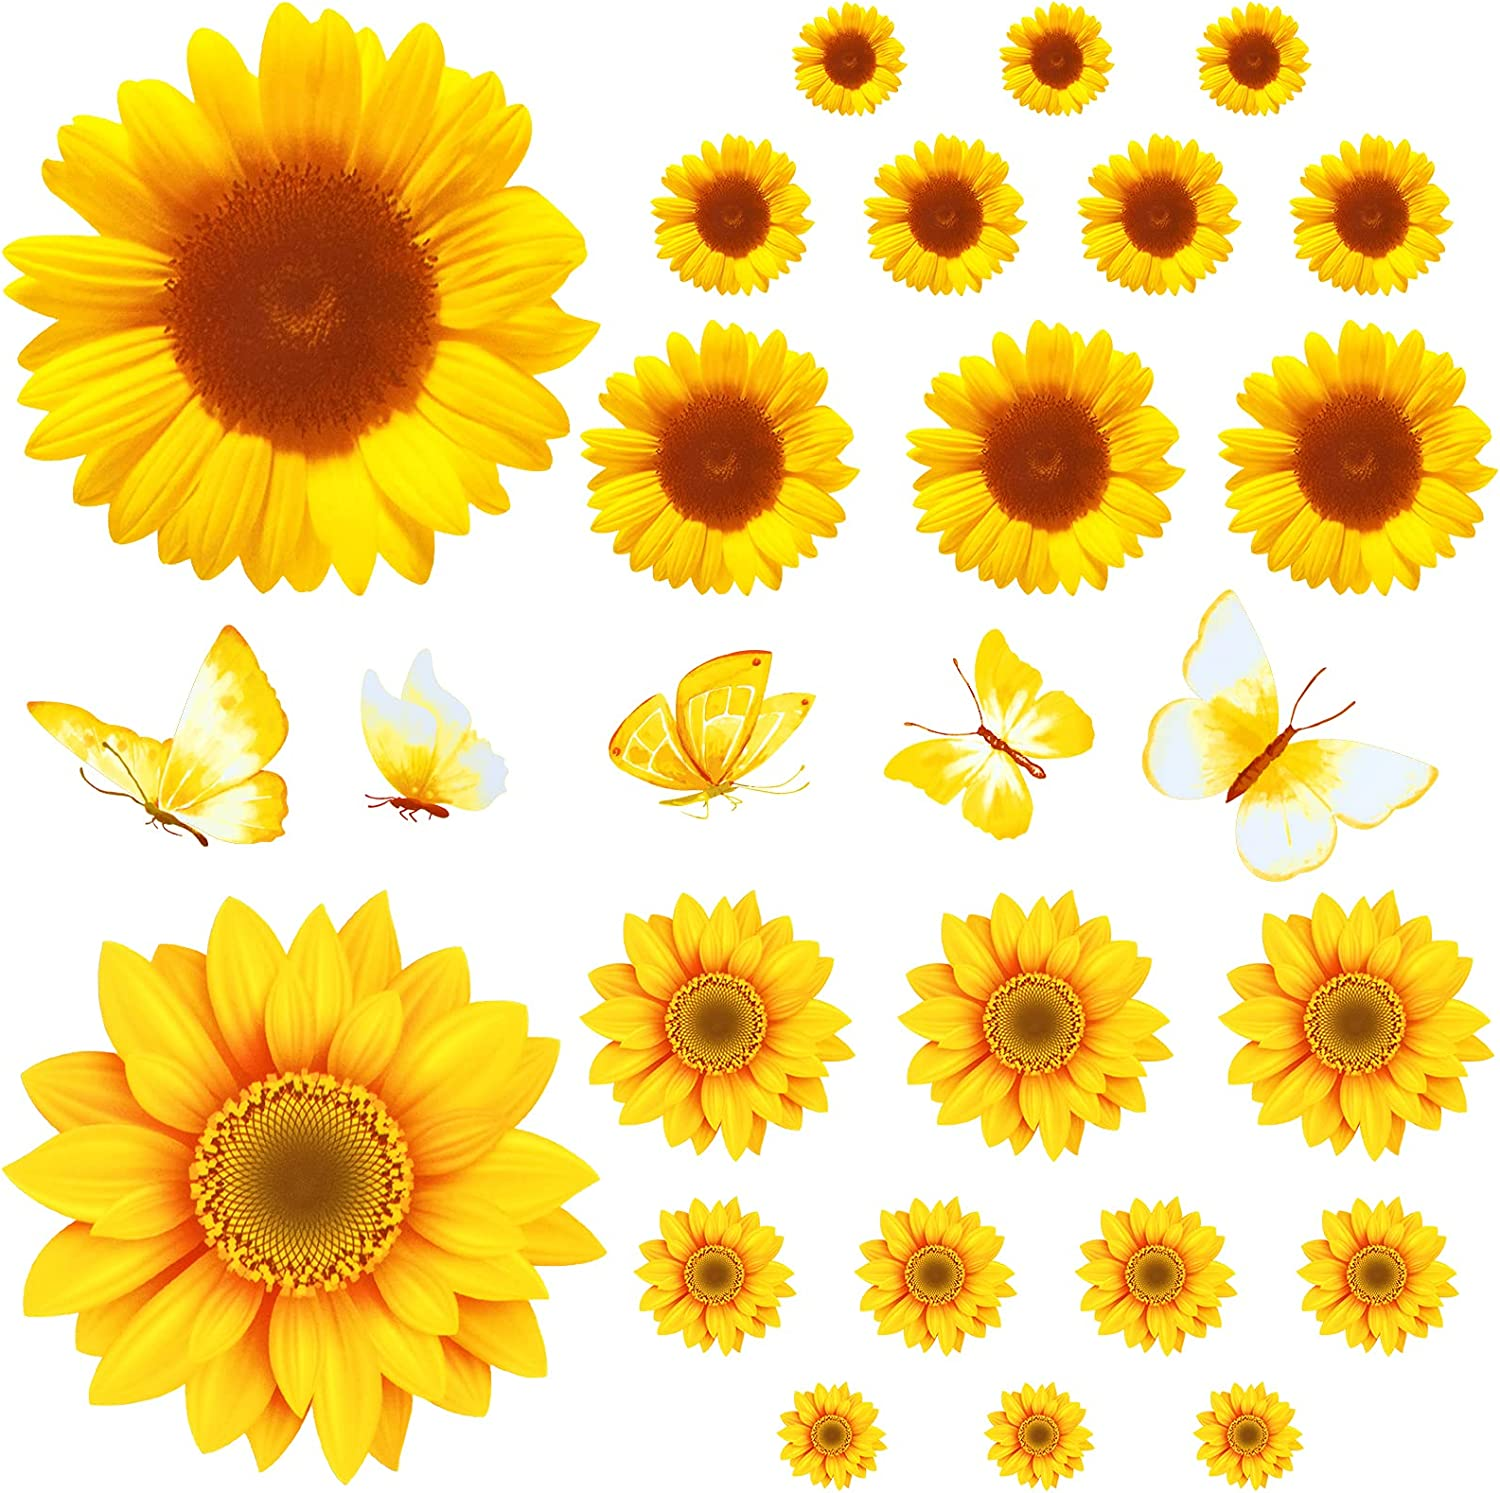 27 Pieces Sunflower Wall Sticker Yellow Flower Wall Decals 3D Butterfly Sticker Yellow Flower Decals Decorations Nursery Daisy Floral Stickers for Kids Baby Living Room Decorations